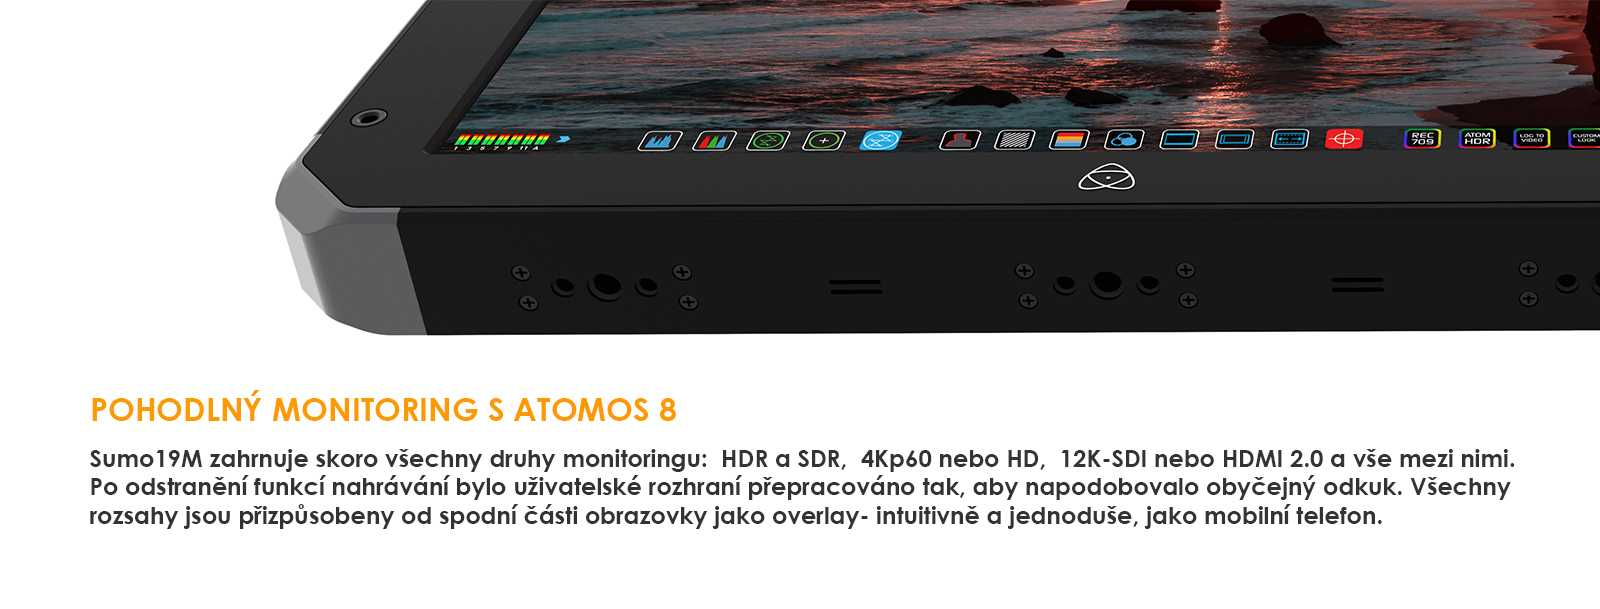 film-technika-atomos-sumo19m-08-intext